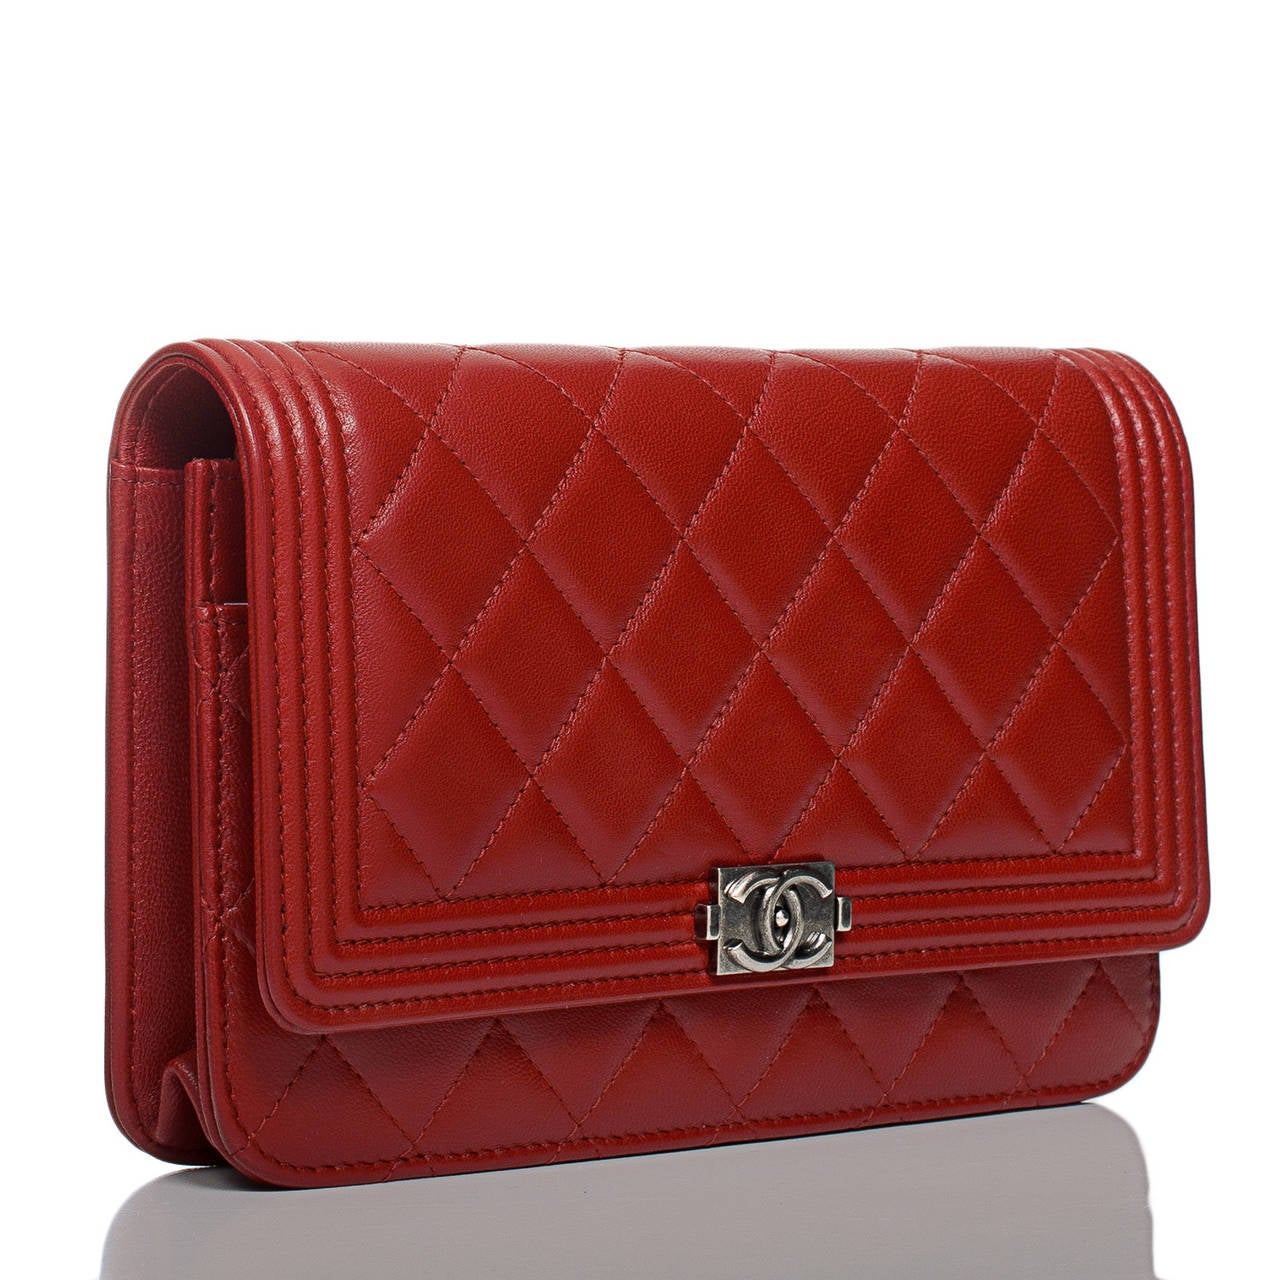 pics for gt chanel wallet on chain red